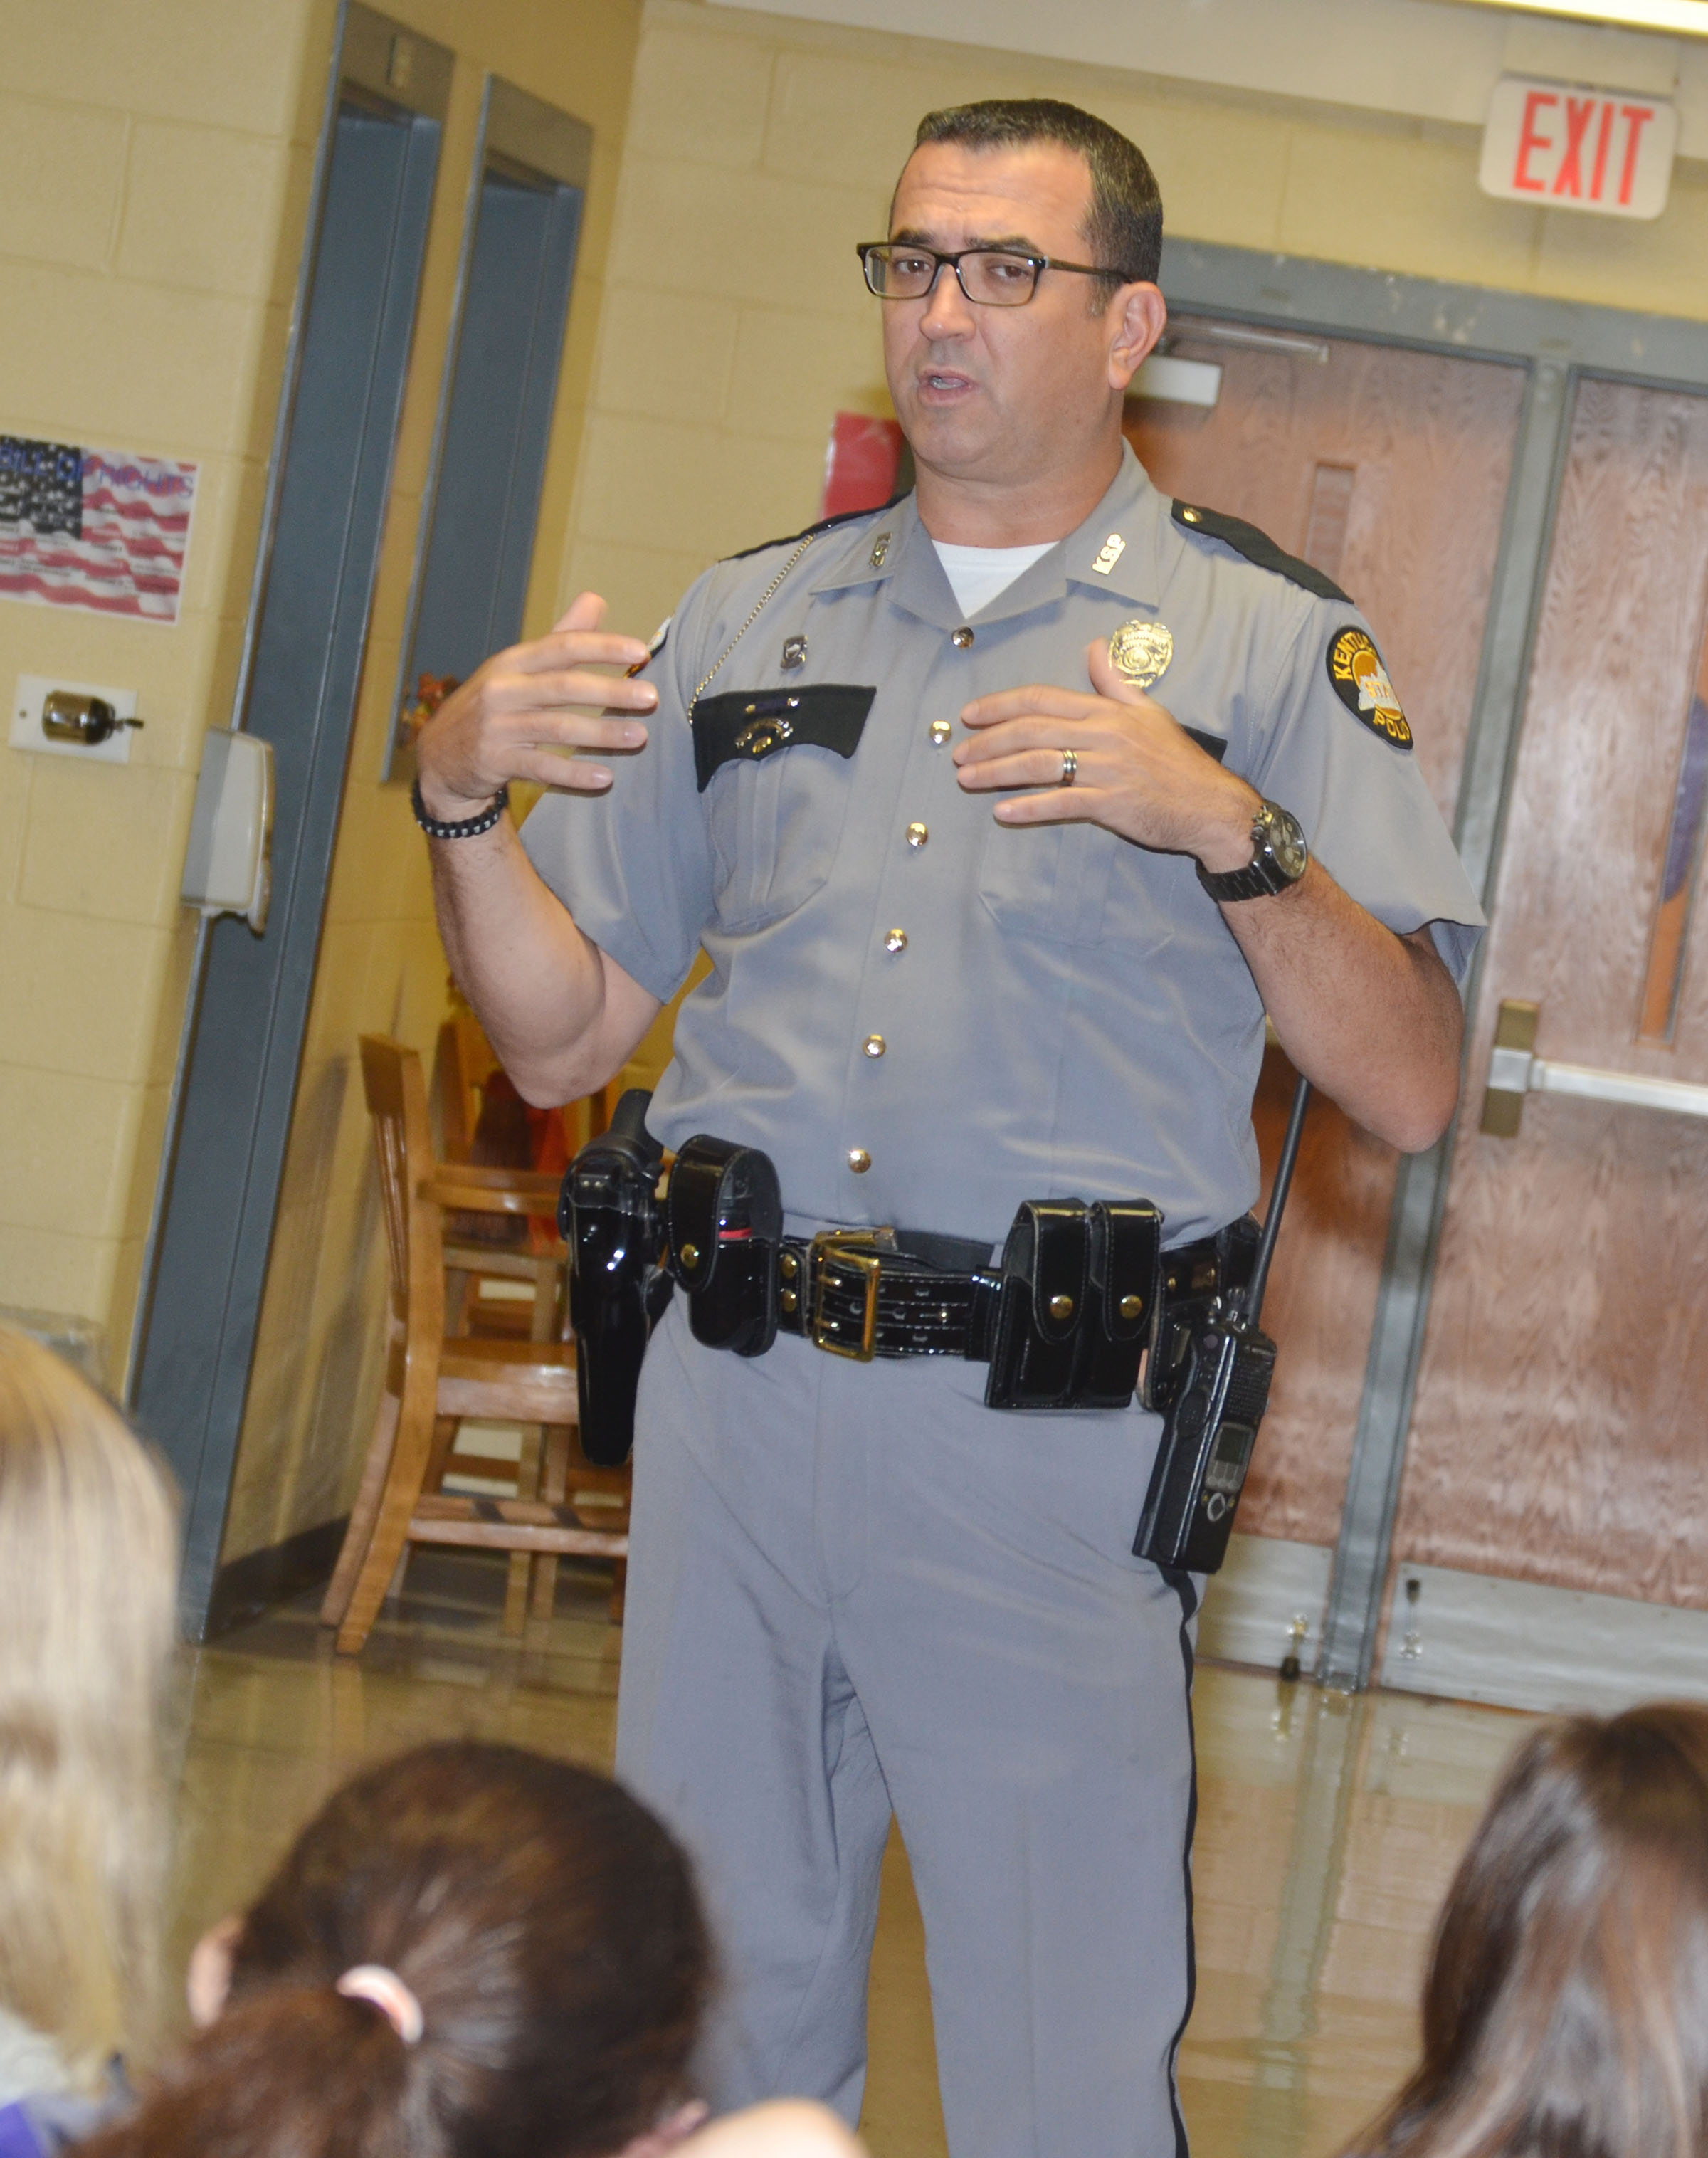 Kentucky State Police Public Affairs Officer Billy Gregory speaks to CMS sixth-graders about his job in law enforcement and the Sept. 11 terrorist attacks.